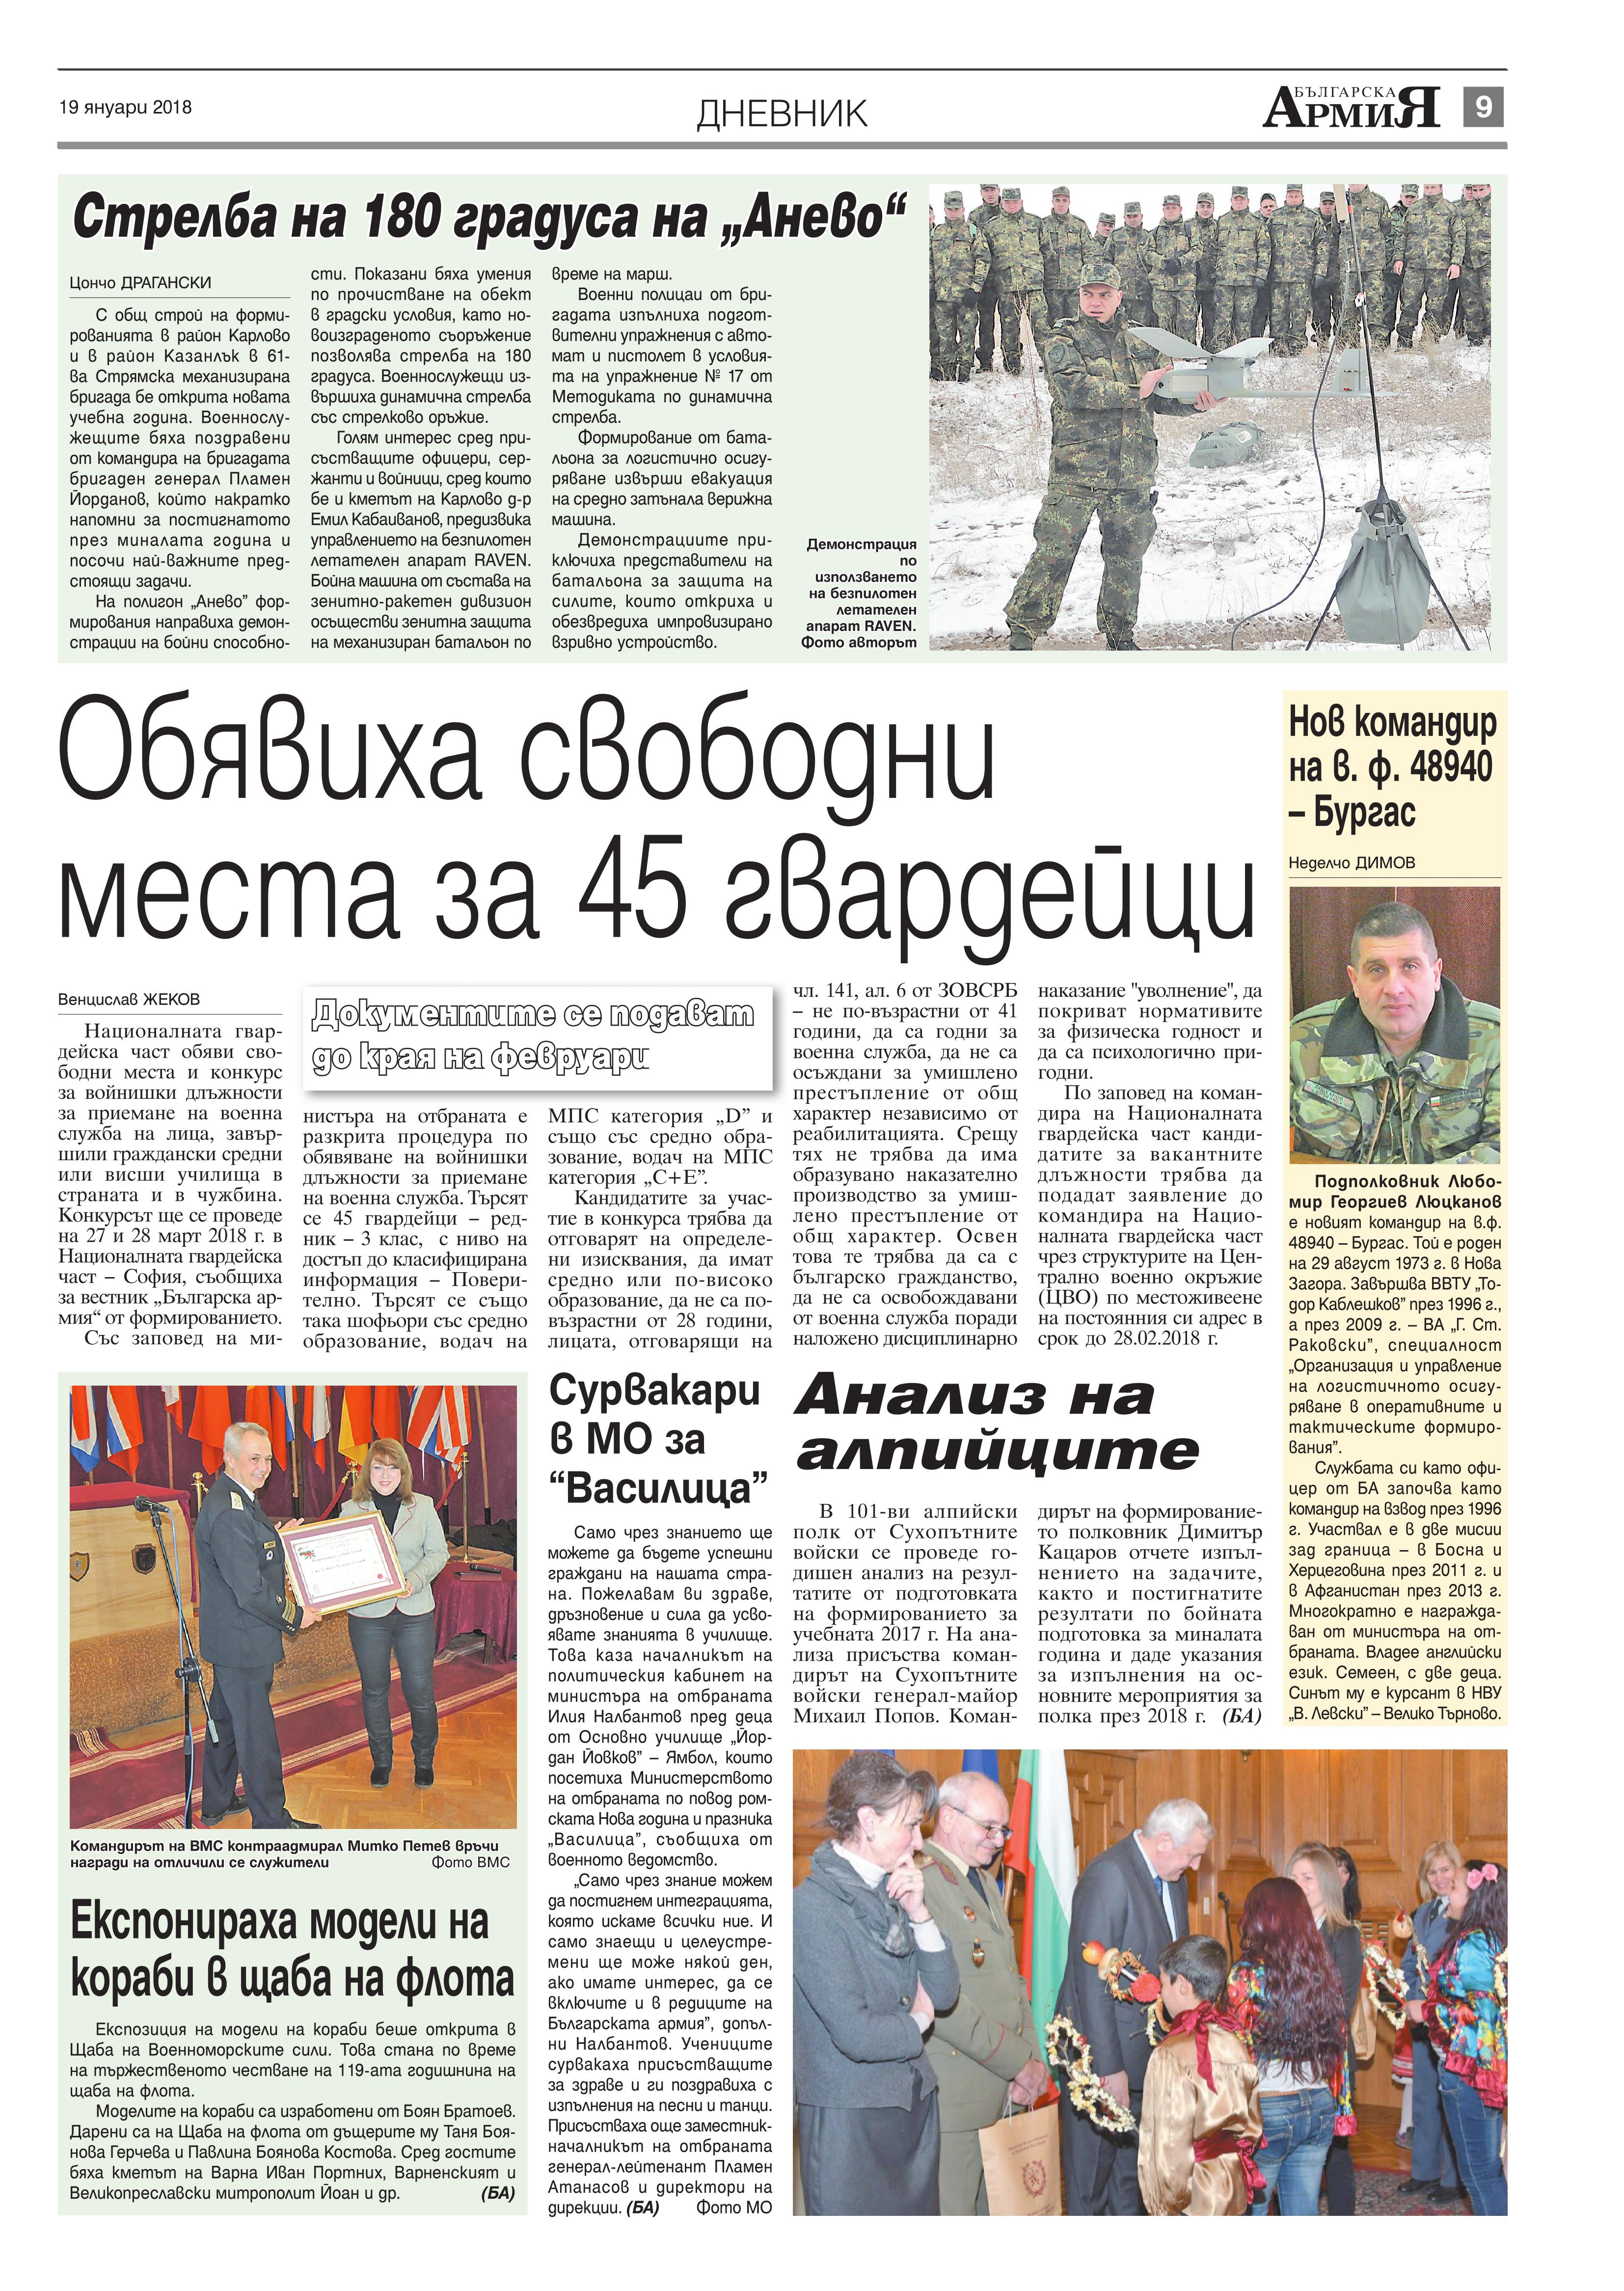 http://armymedia.bg/wp-content/uploads/2015/06/09.page1_-35.jpg